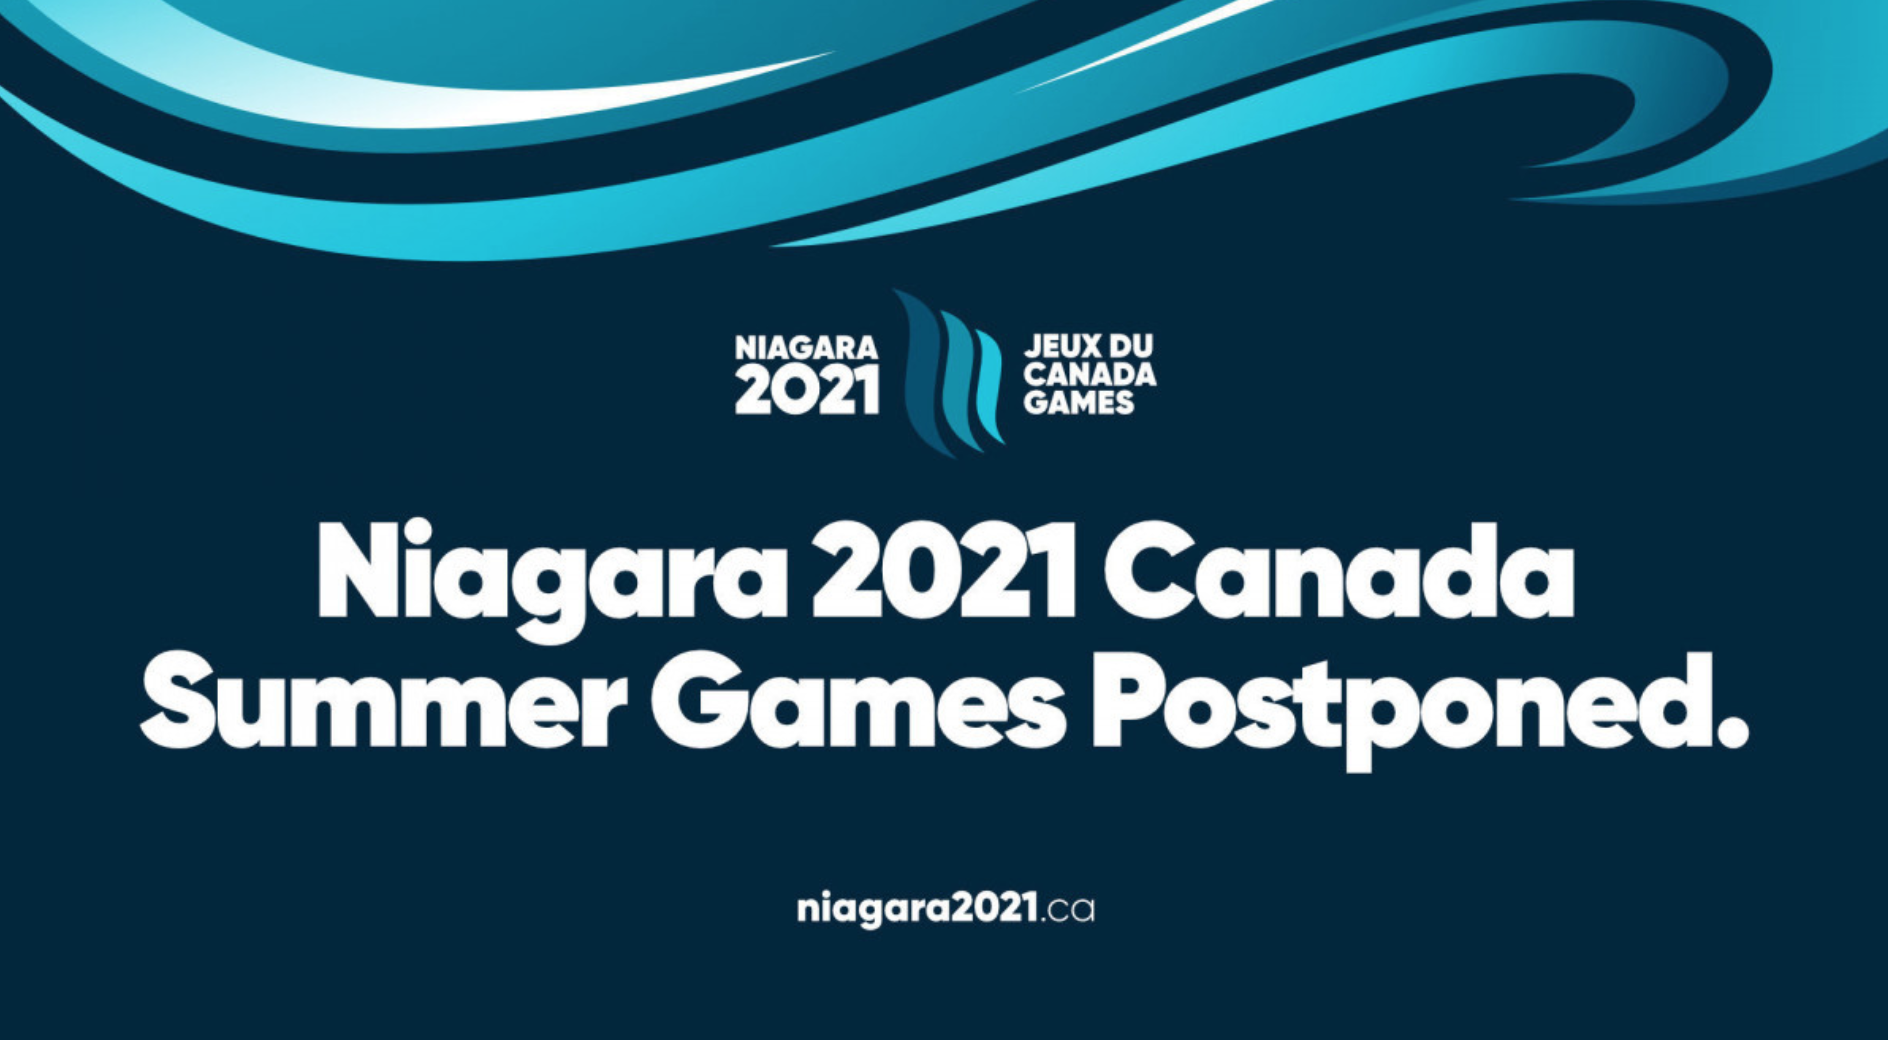 2021 Canada Summer Games postponed to 2022